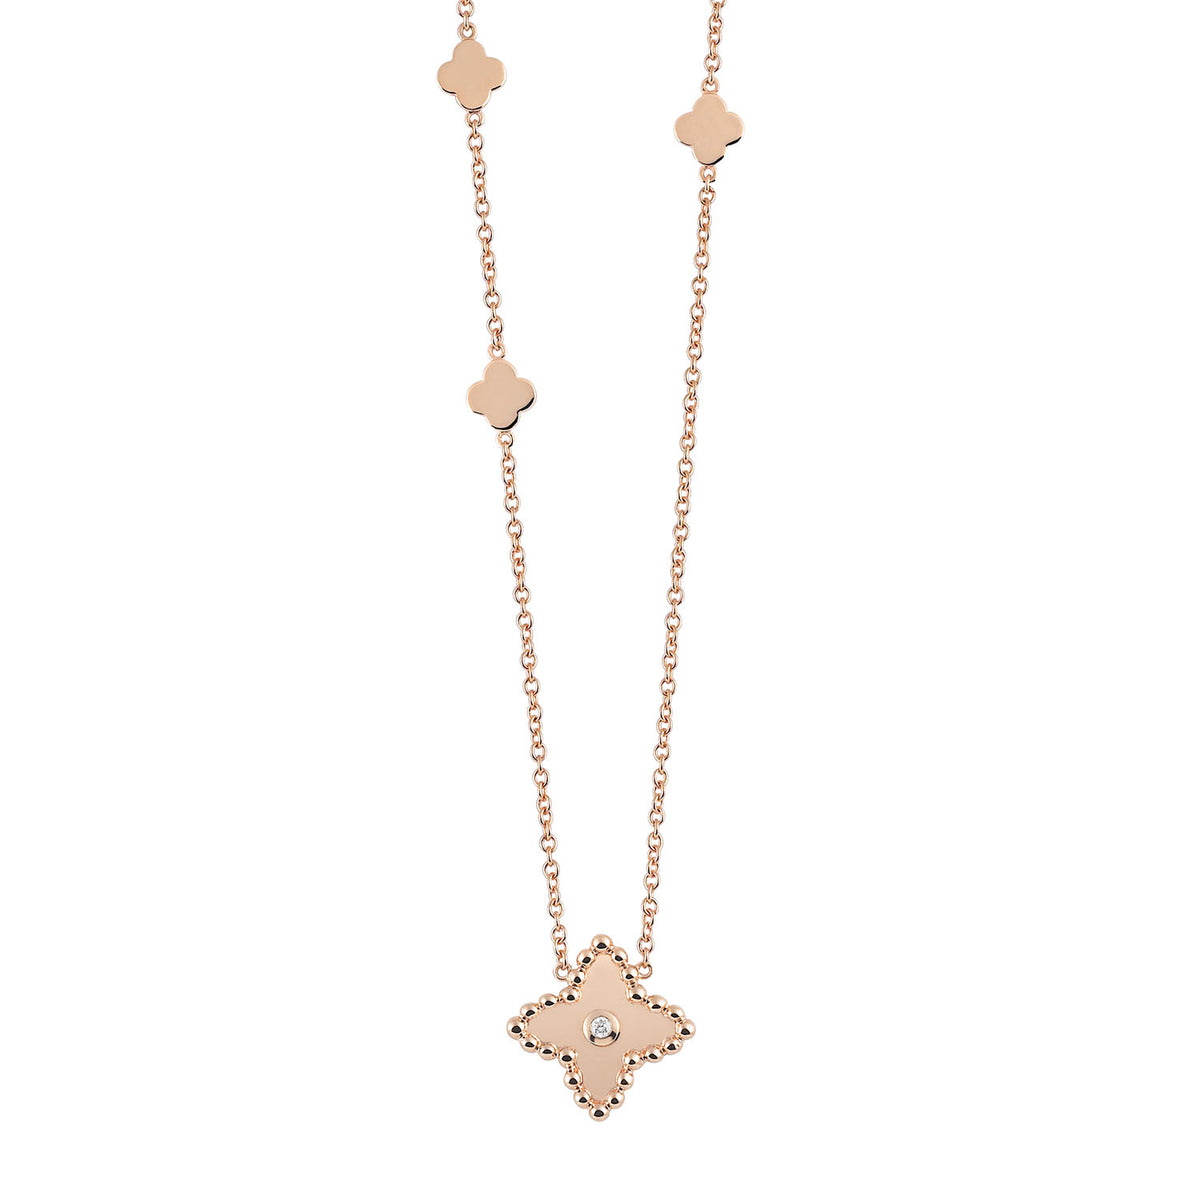 Palladio Necklace in 18k Rose Gold with Diamond